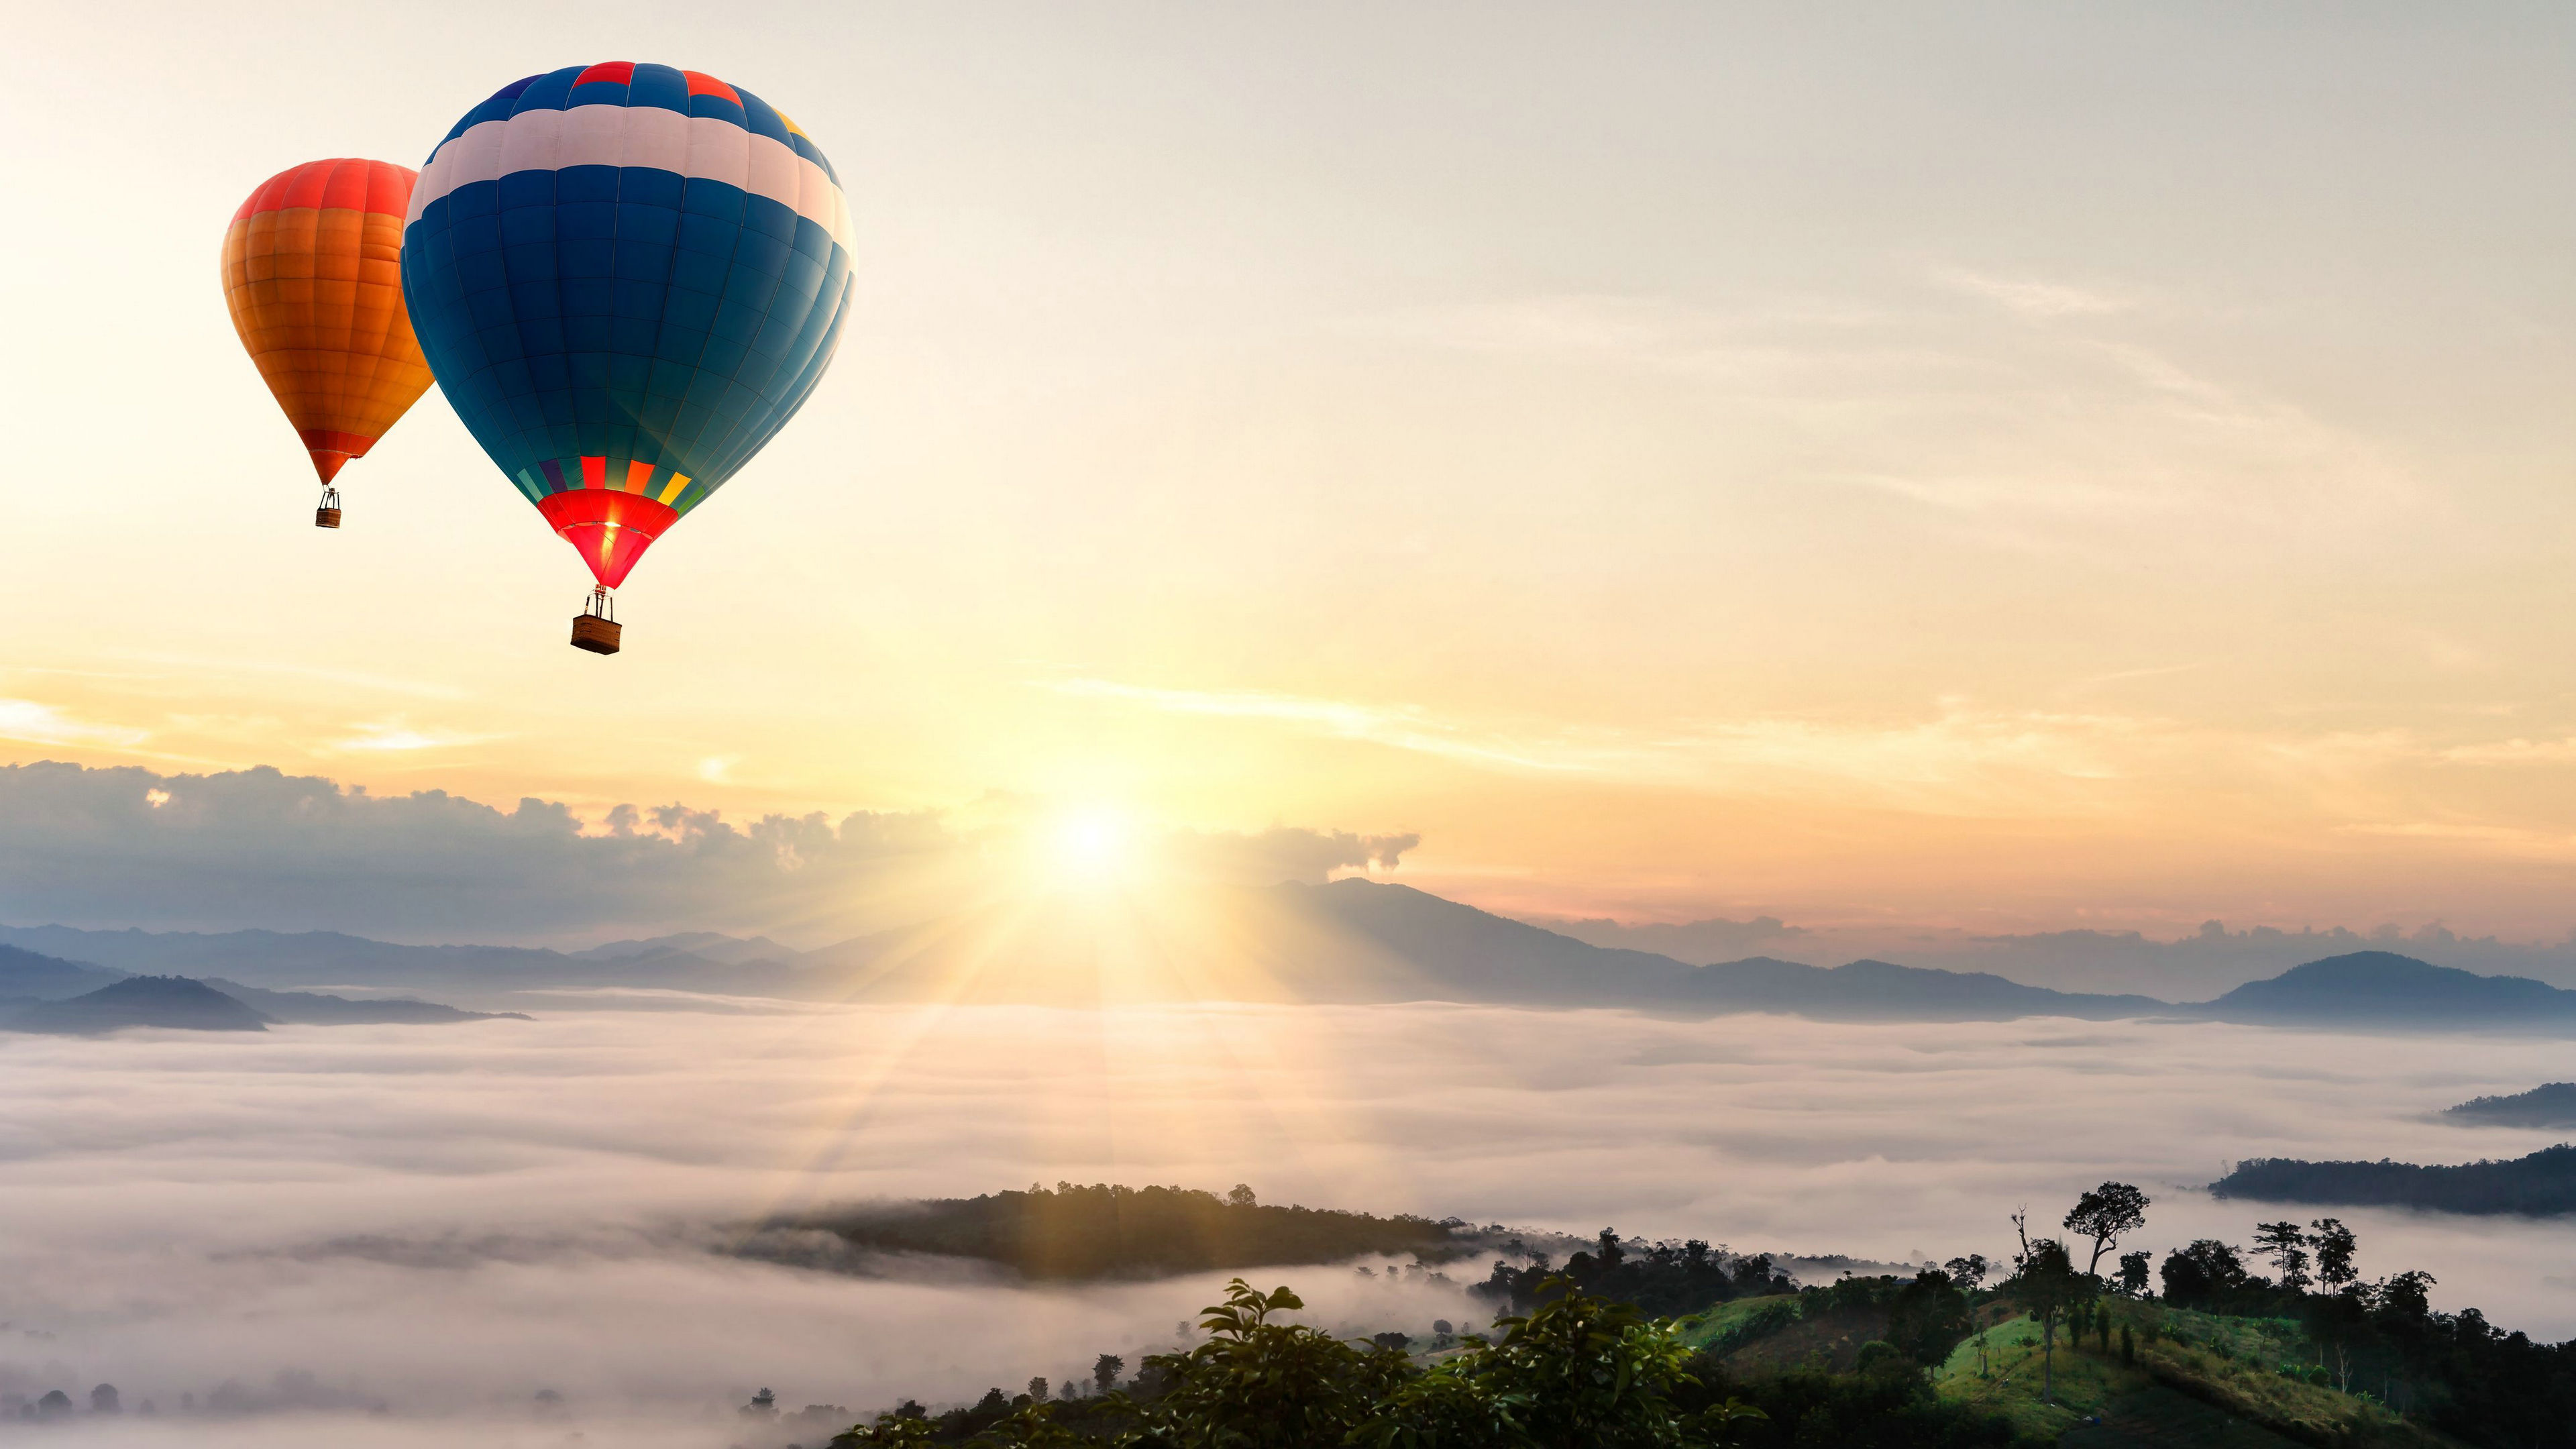 Helicopter Full Hd Wallpaper 21 Wonderful Hd Hot Air Balloon Wallpapers